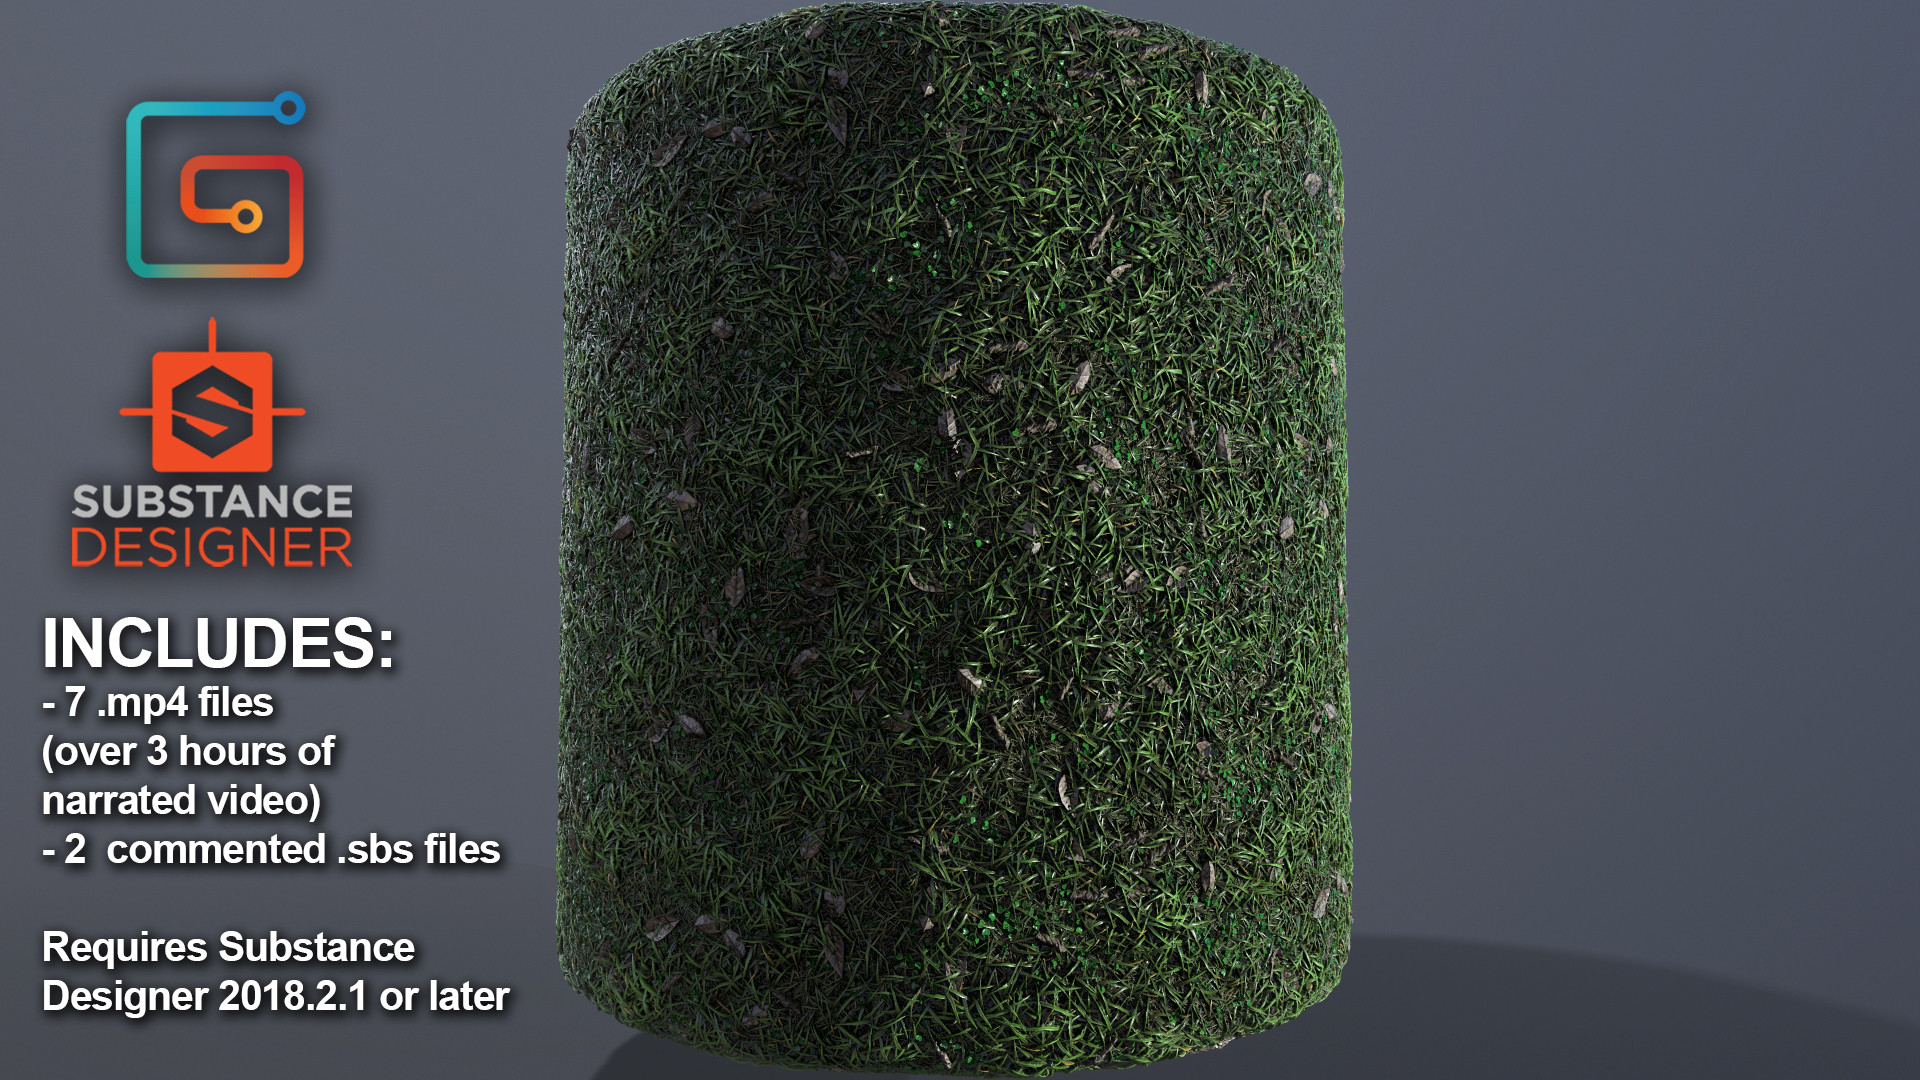 ArtStation - Substance Designer - Grass Video Tutorial, Max Golosiy